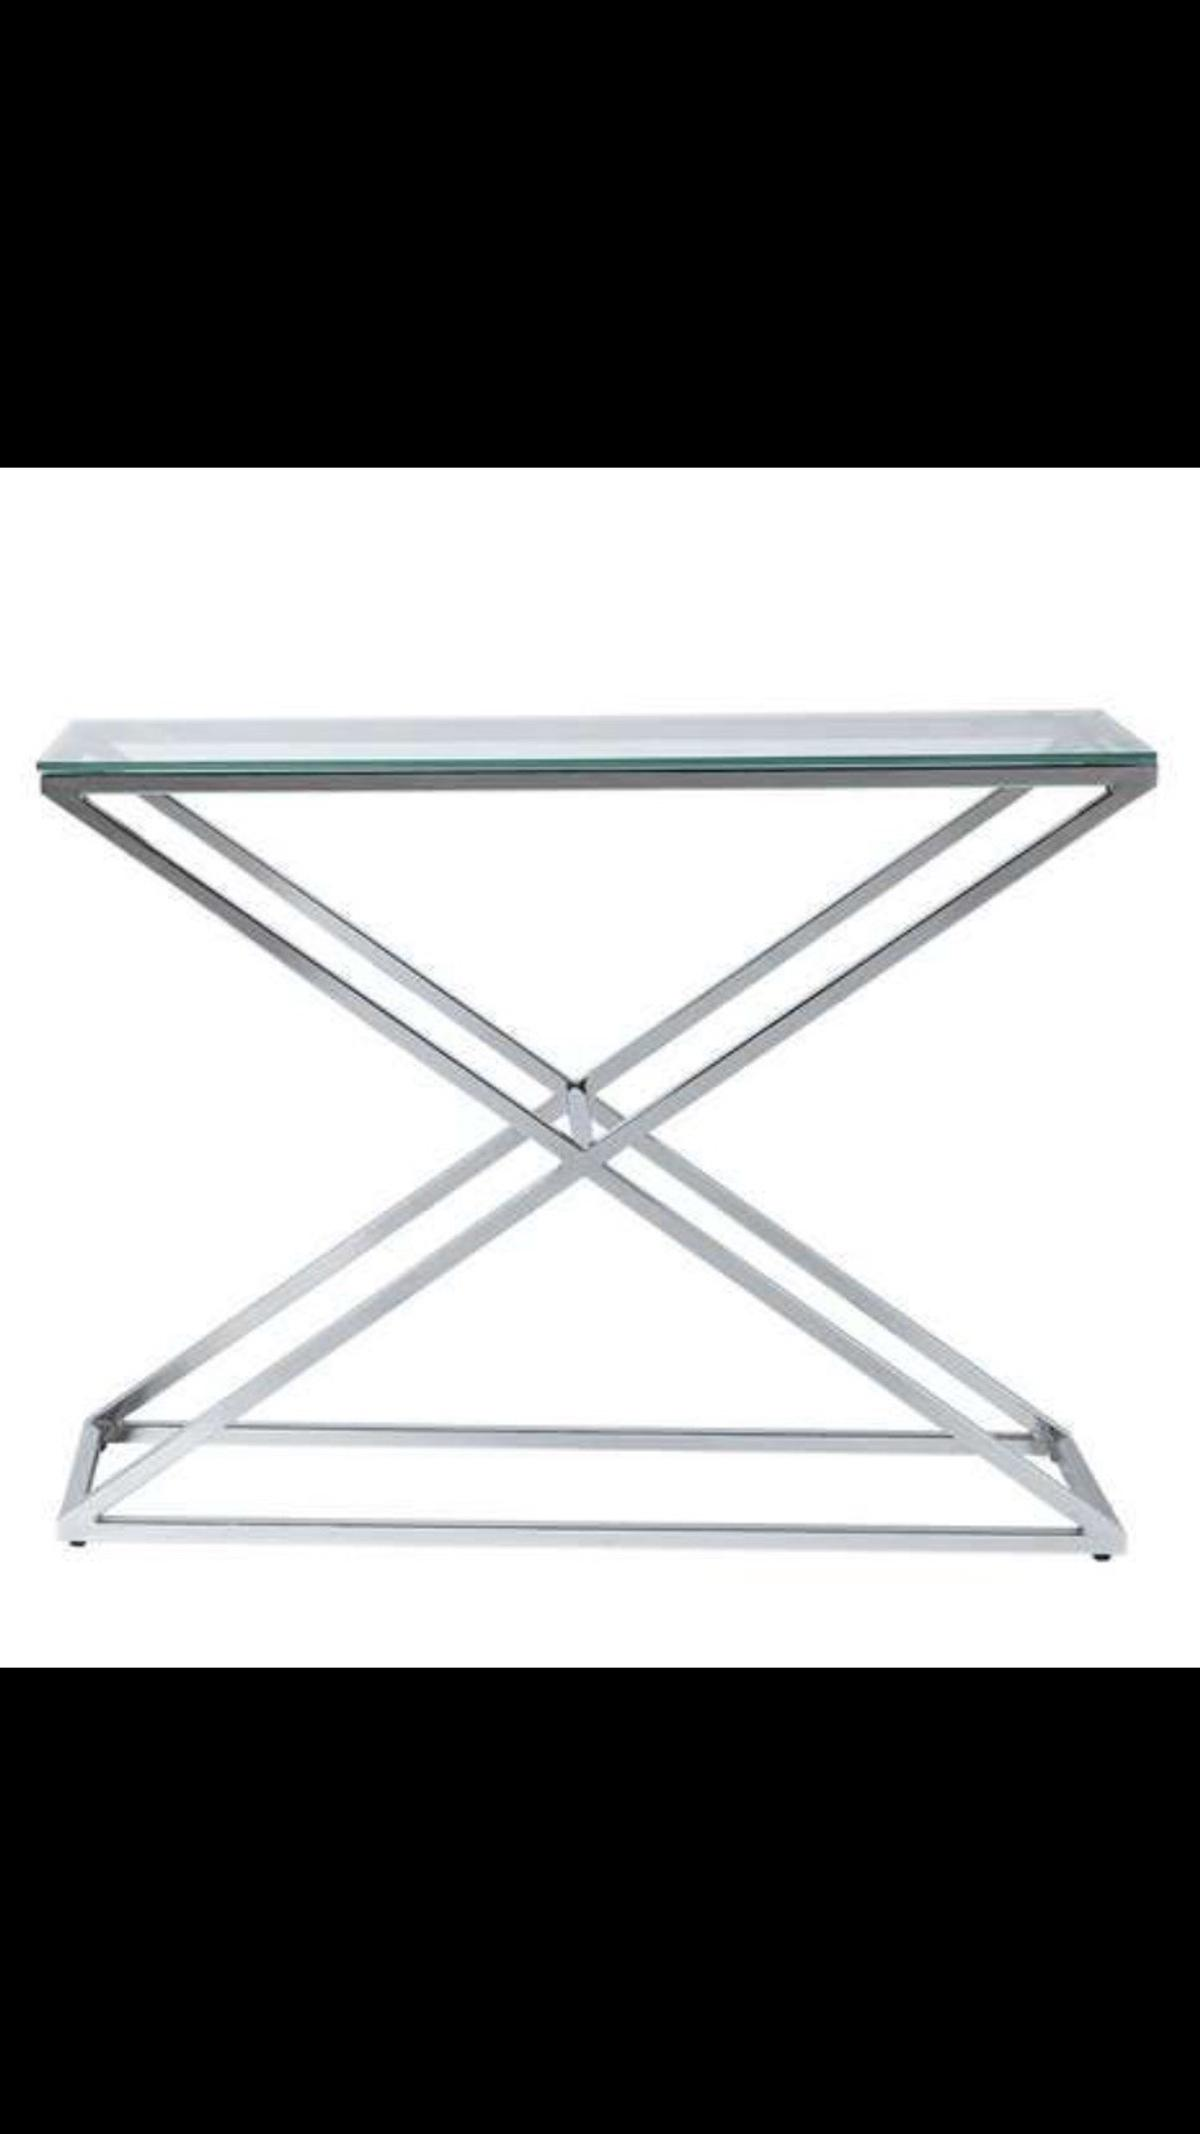 Dunelm Console Table In Ne64 Newbiggin By The Sea For 35 00 For Sale Shpock